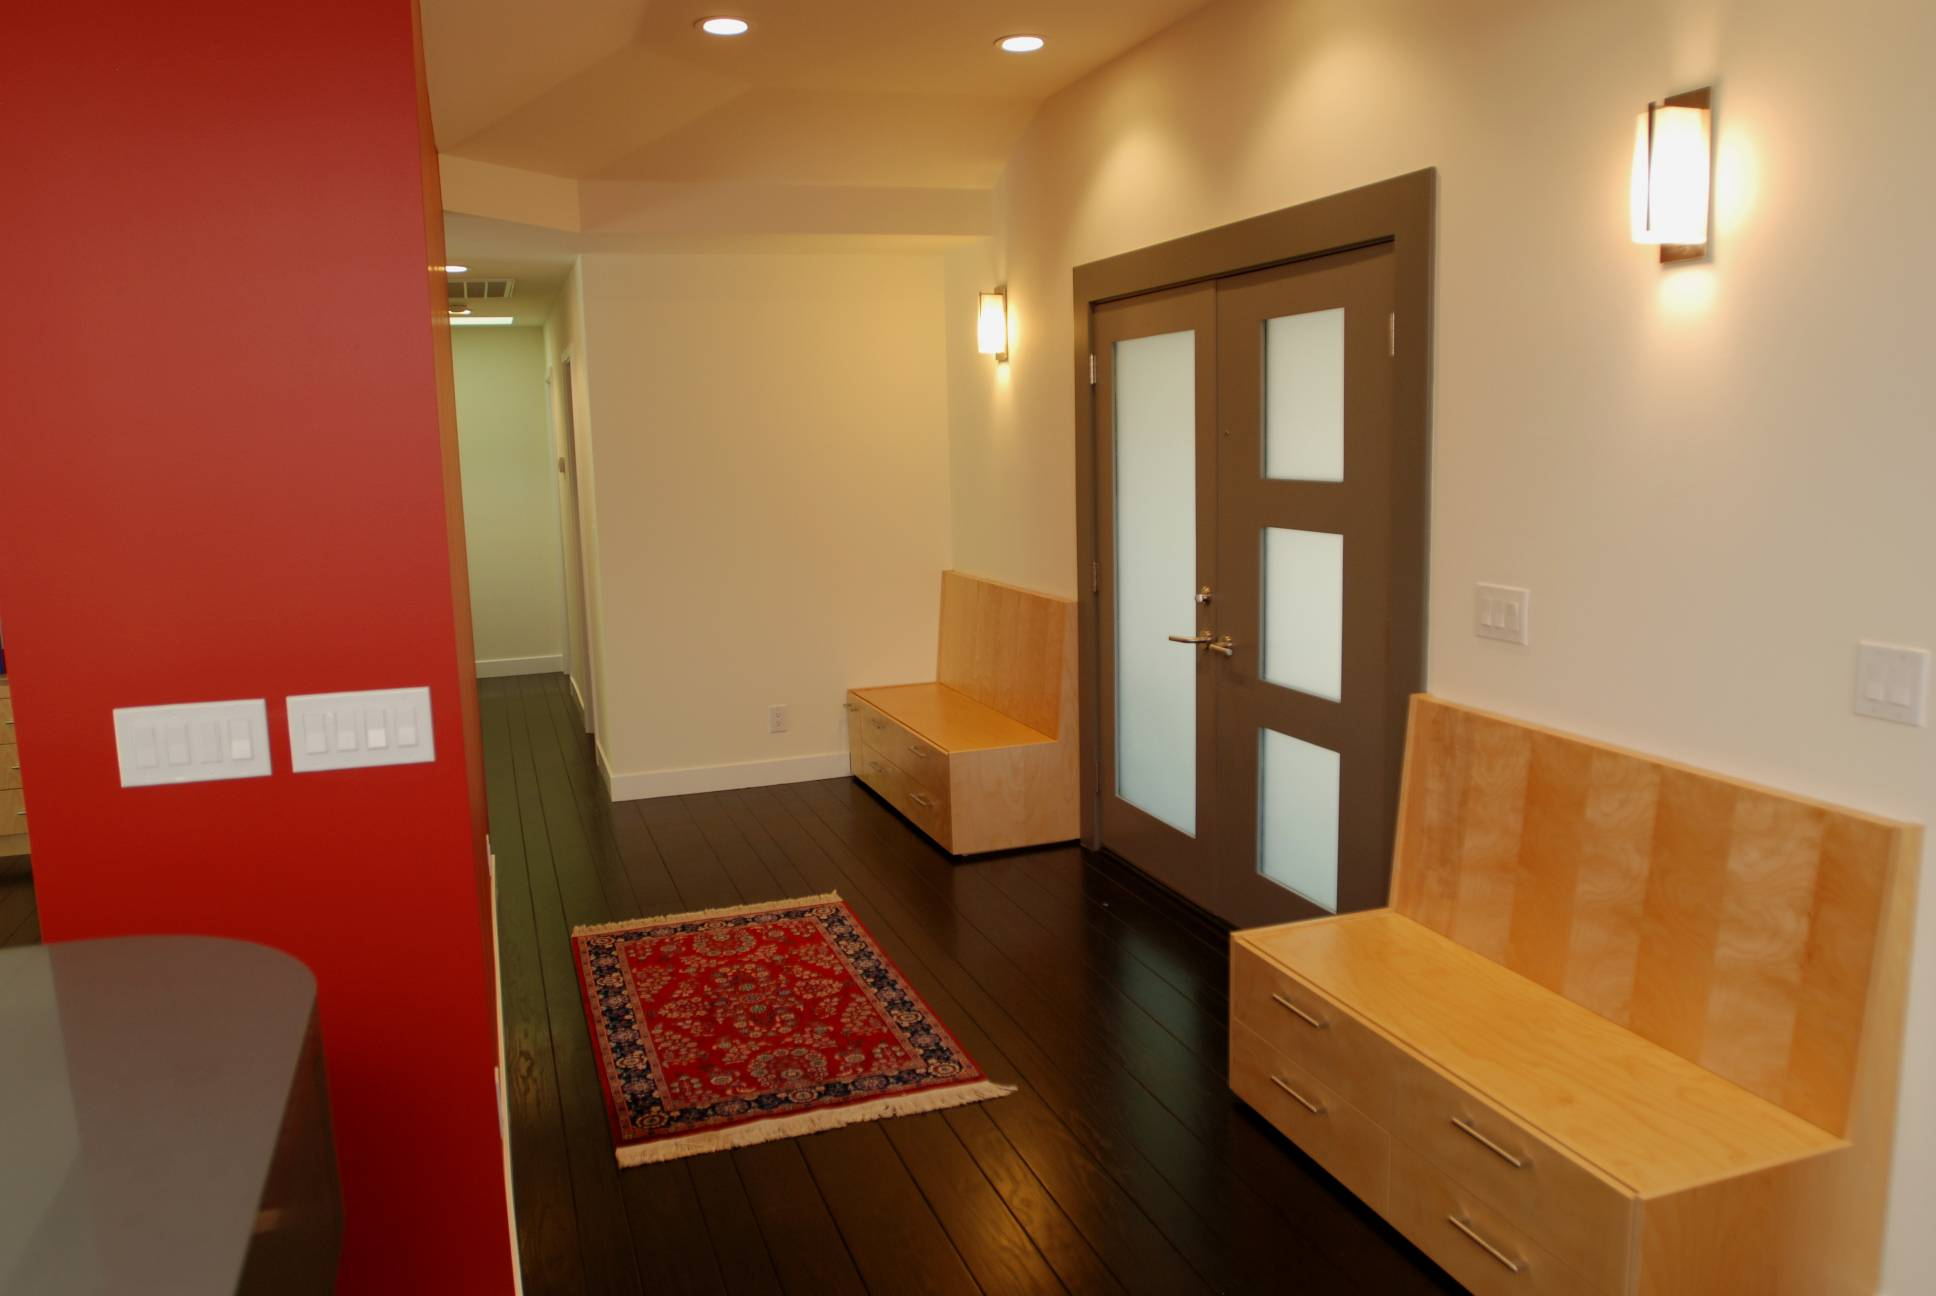 Main entryway benches storage, Architect design, interior design work, Menlo Park